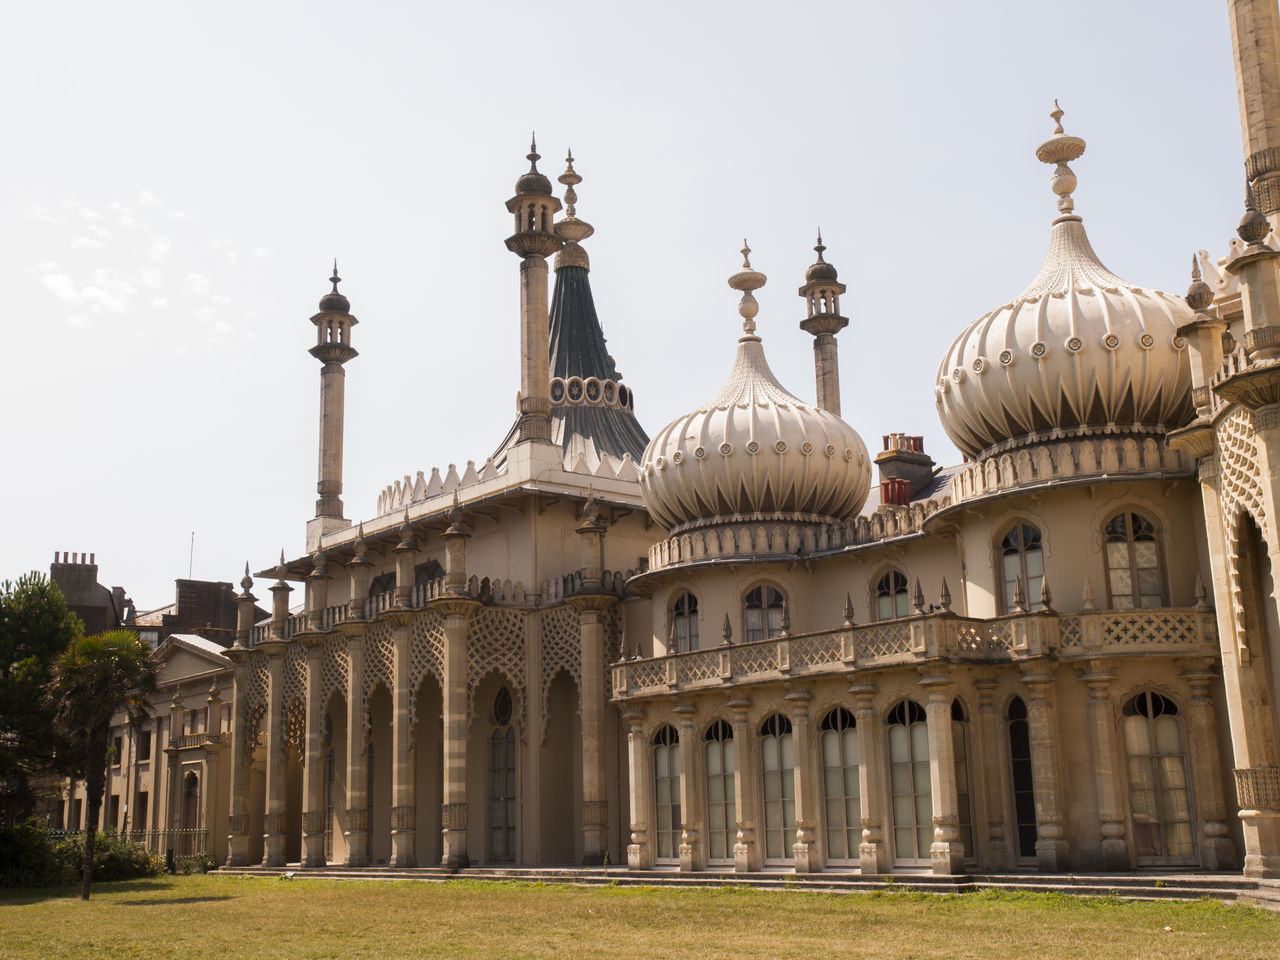 Royal Pavilion Brighton Sussex England The Royal Pavilion, also known as the Brighton Pavilion, is a former royal residence located in Brighton, England. Beginning in 1787, it was built in three stages as a seaside retreat for George, Prince of Wales, who became the Prince Regent in 1811. It is built in the Indo-Saracenic style prevalent in India for most of the 19th century. The current appearance of the Pavilion, with its domes and minarets, is the work of architect John Nash, who extended the building starting in 1815 Architecture Brighton Building Exterior Built Structure Day Dome Façade Famous Place History Hospital Indian Army International Landmark John Nash Lawn Memories Minarets Outdoors Place Of Worship Prince Of Wales Royal Pavilion Royal Residence Spire  Tourism Travel Destinations World War One